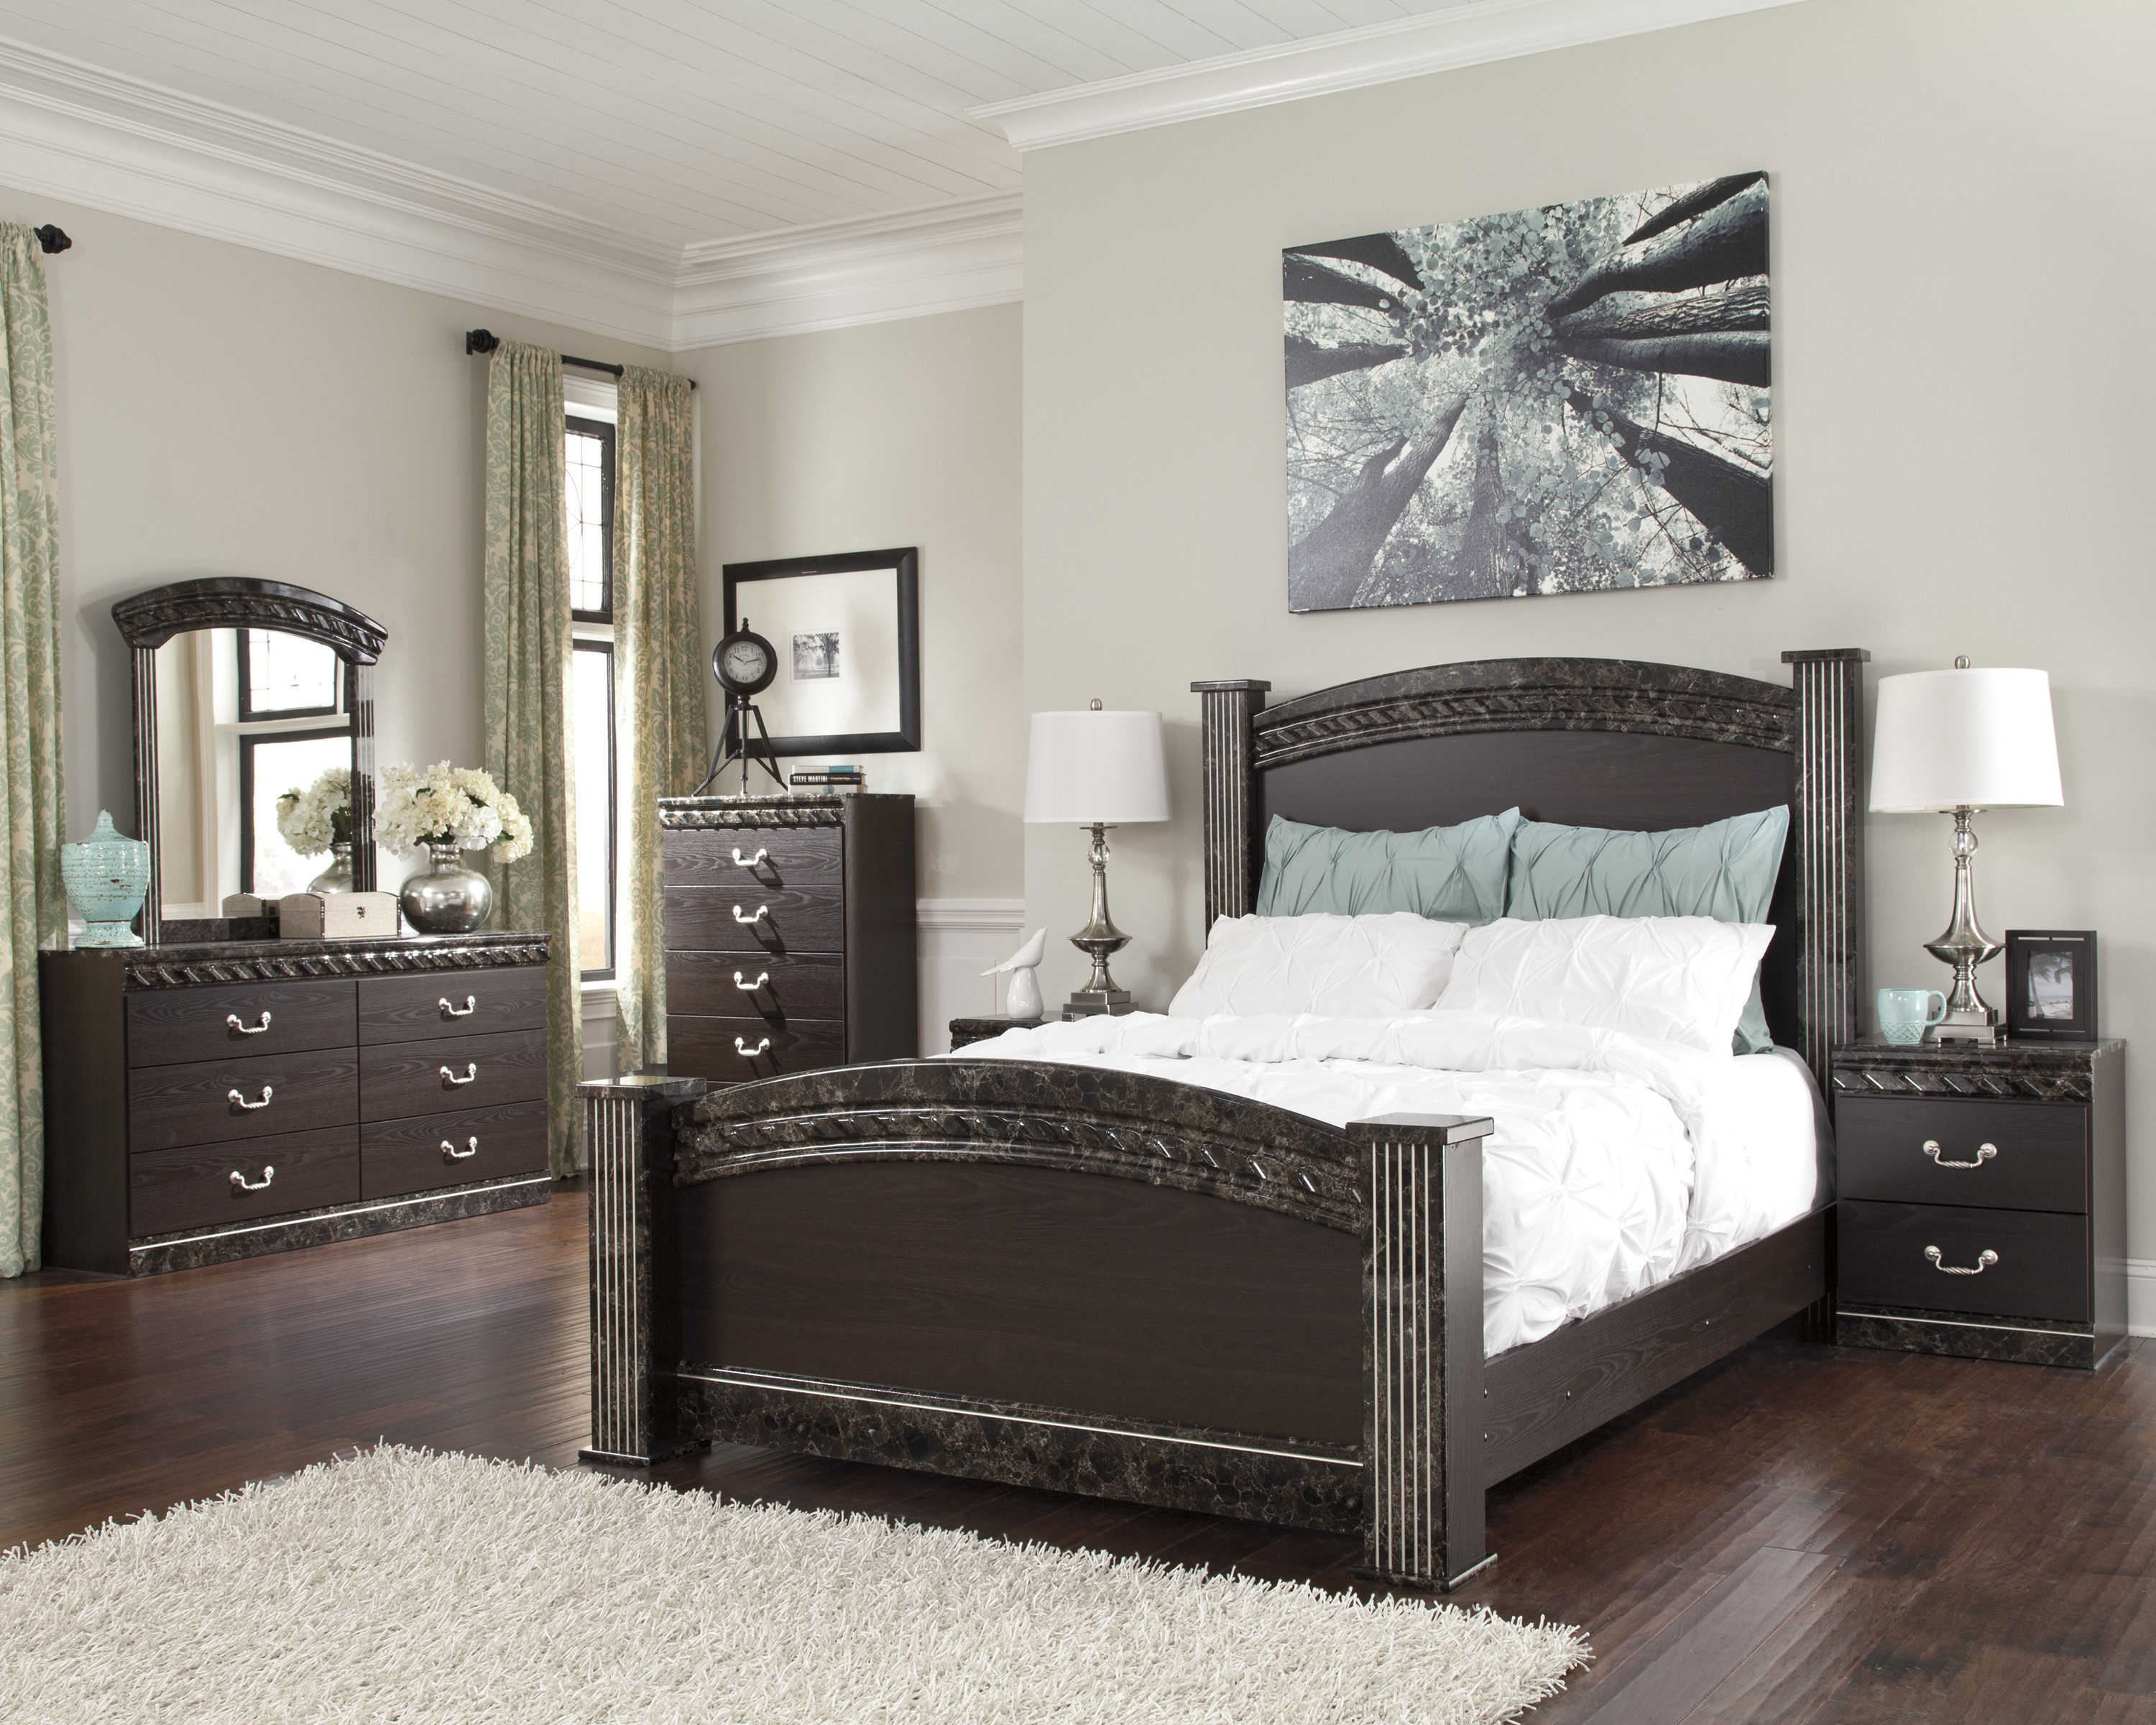 Ashley furniture vachel master bedroom set the classy home No dresser in master bedroom